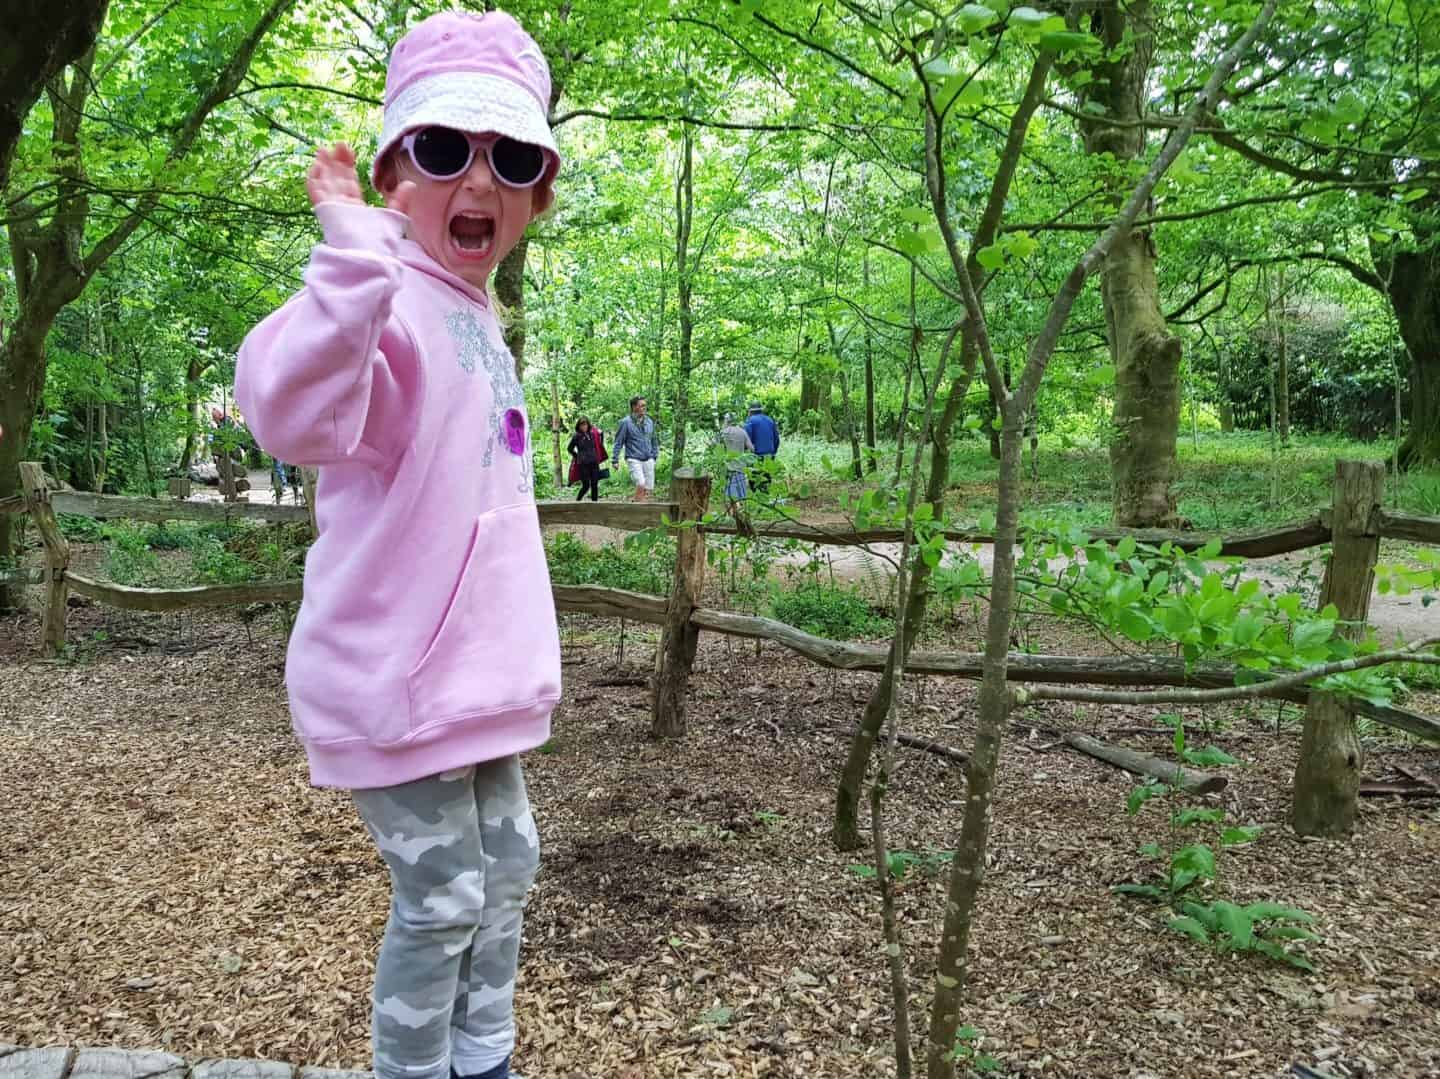 Girl waving from natural play area